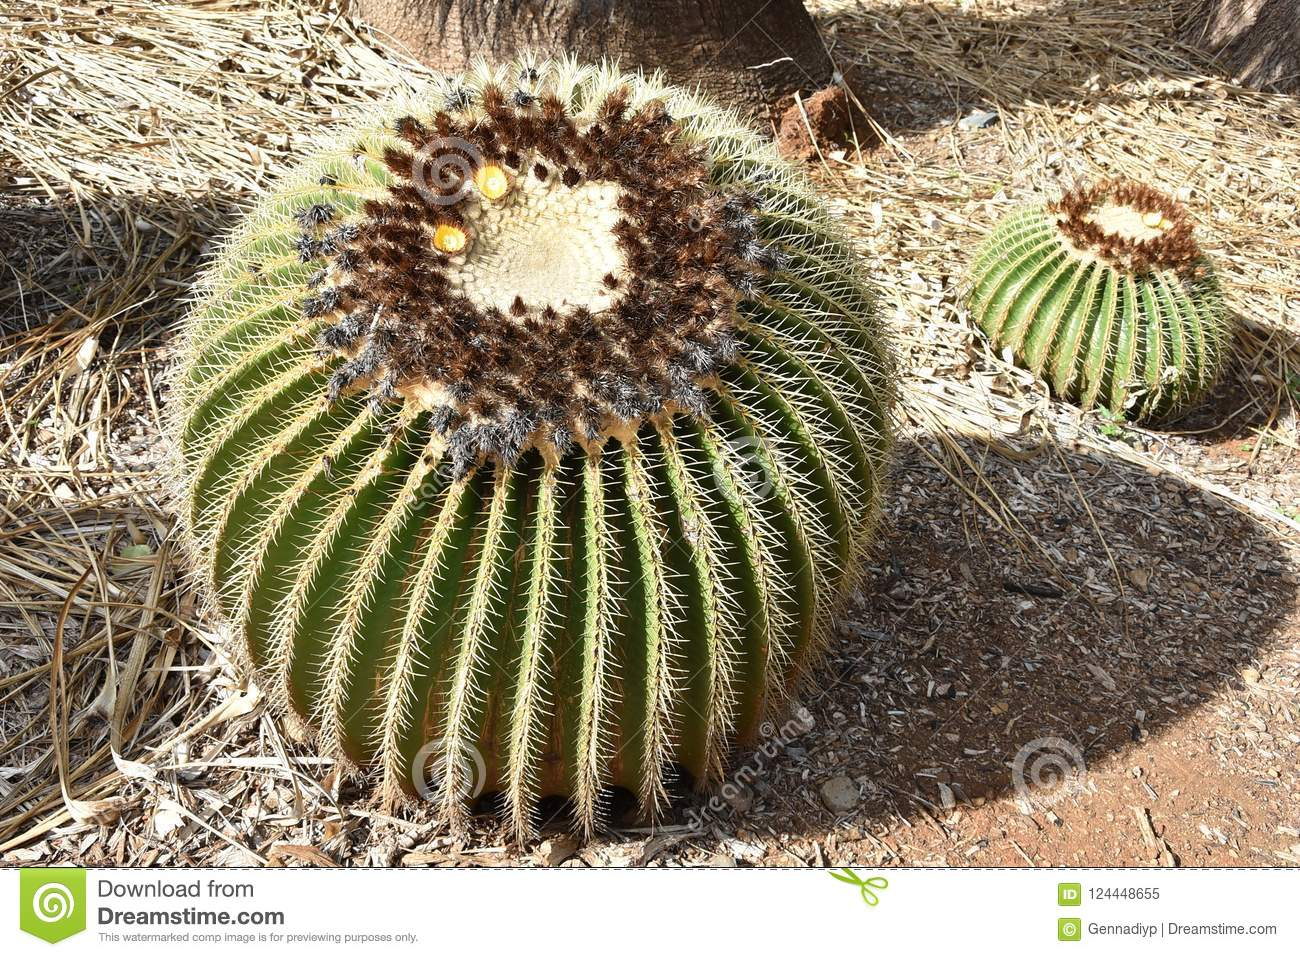 A Golden barrel cactus